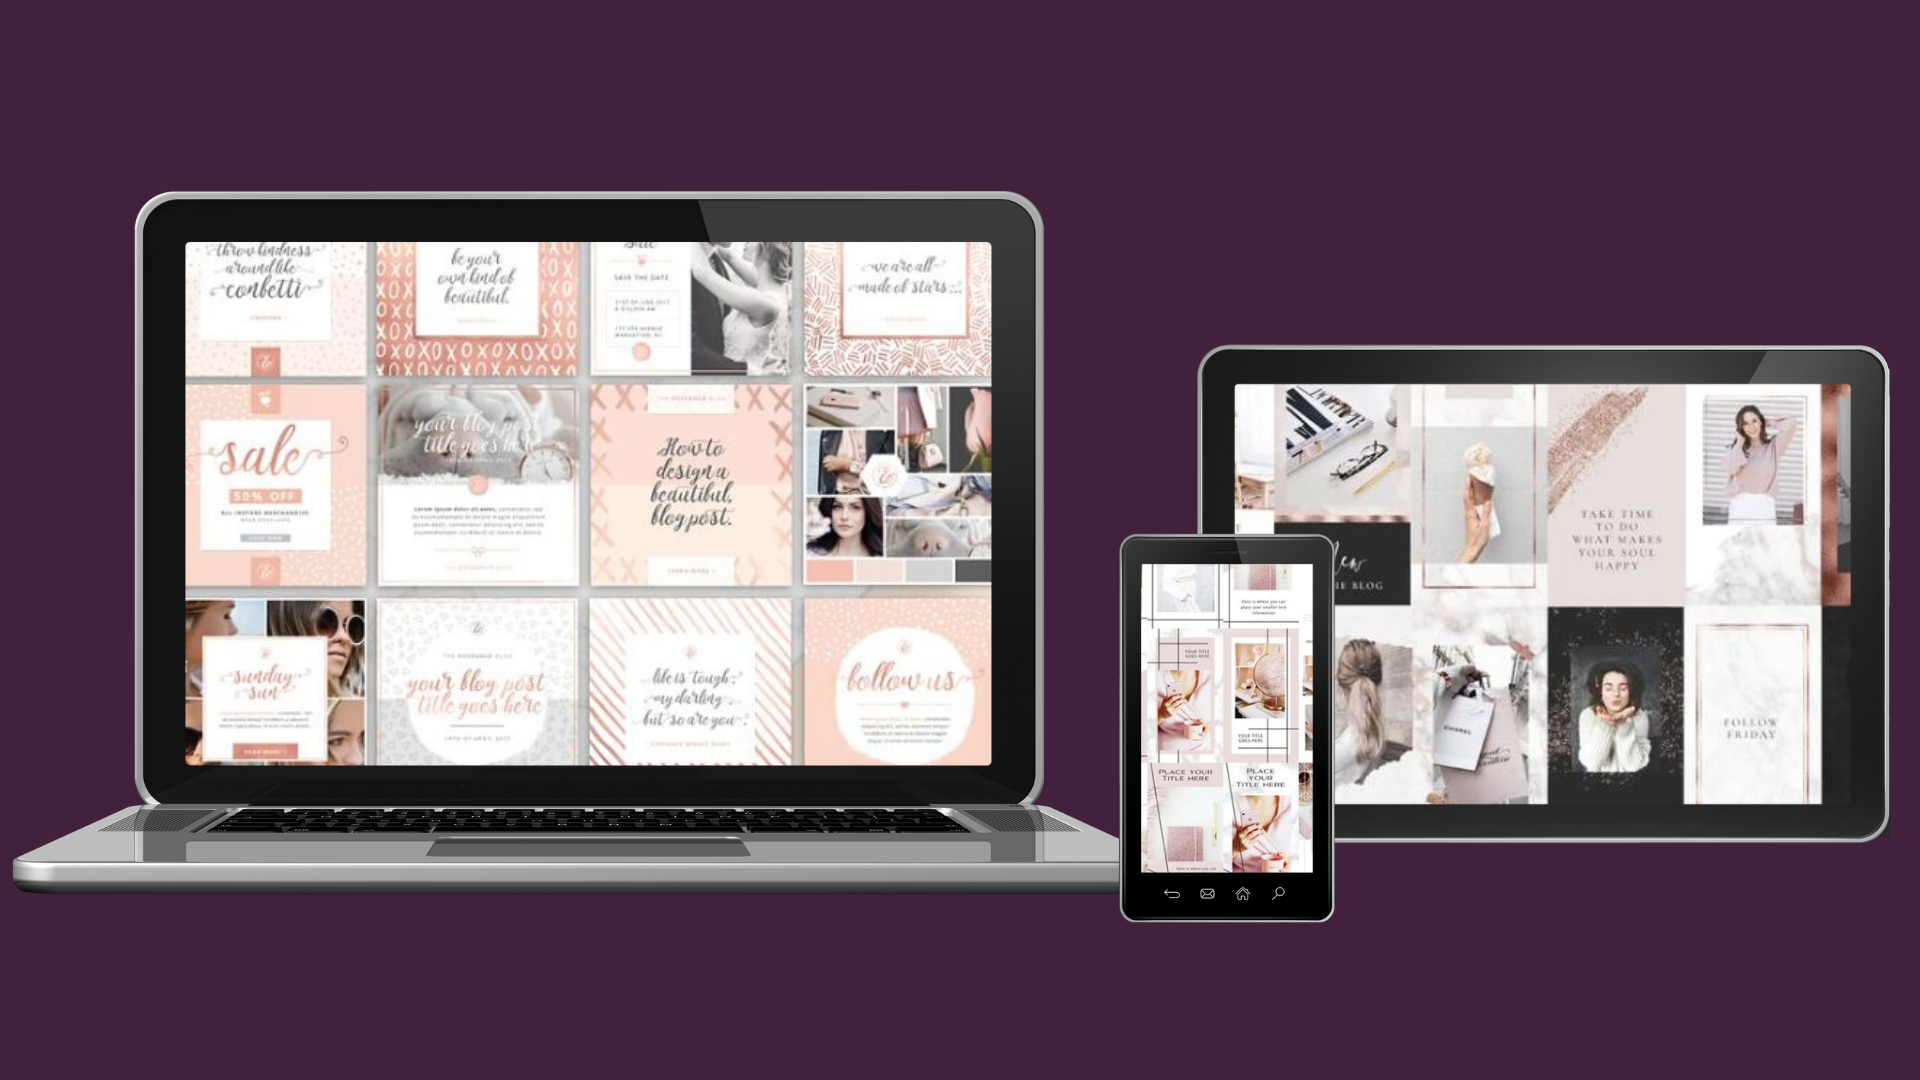 17 Editable Canva Templates for Instagram and Facebook Posts